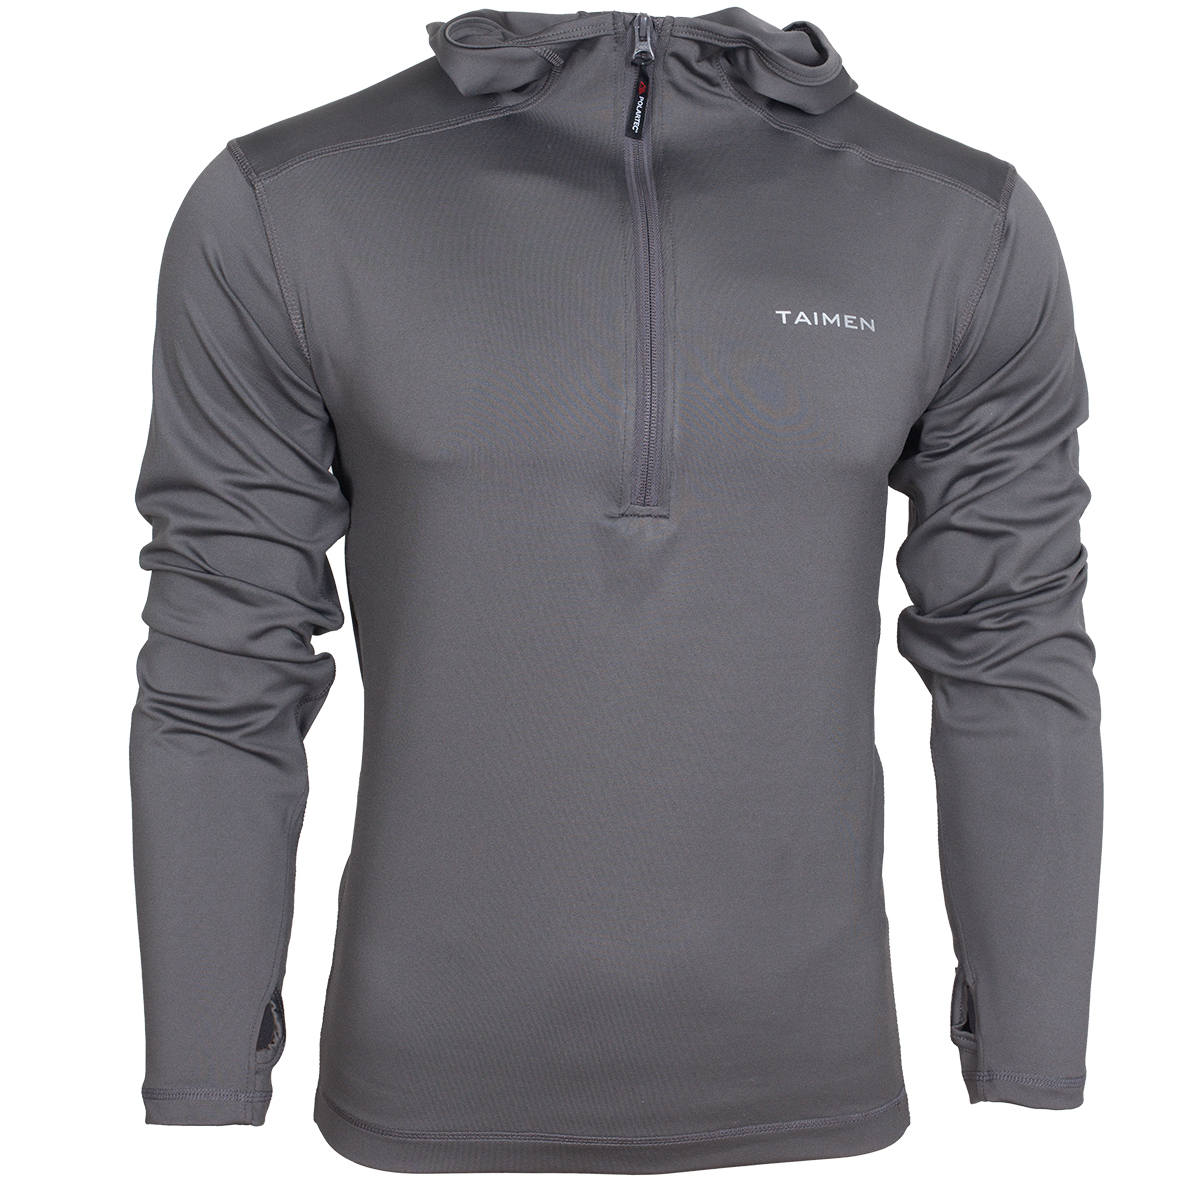 Taimen Polartec Power Stretch Lt Hoody  - Goryla Gray